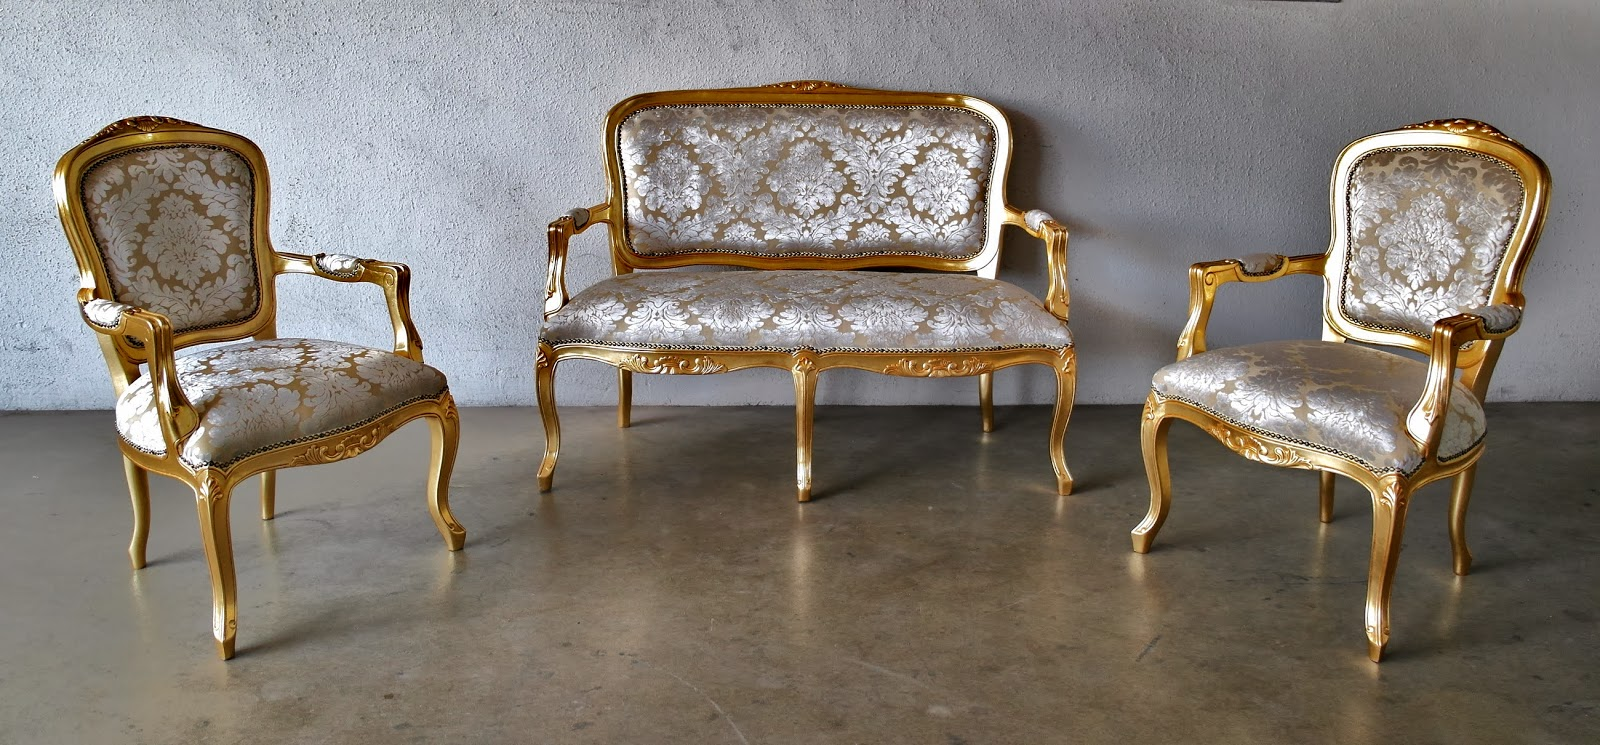 French furniture - French Sofa Set In Velvety Cream Embossed Designed Fabric